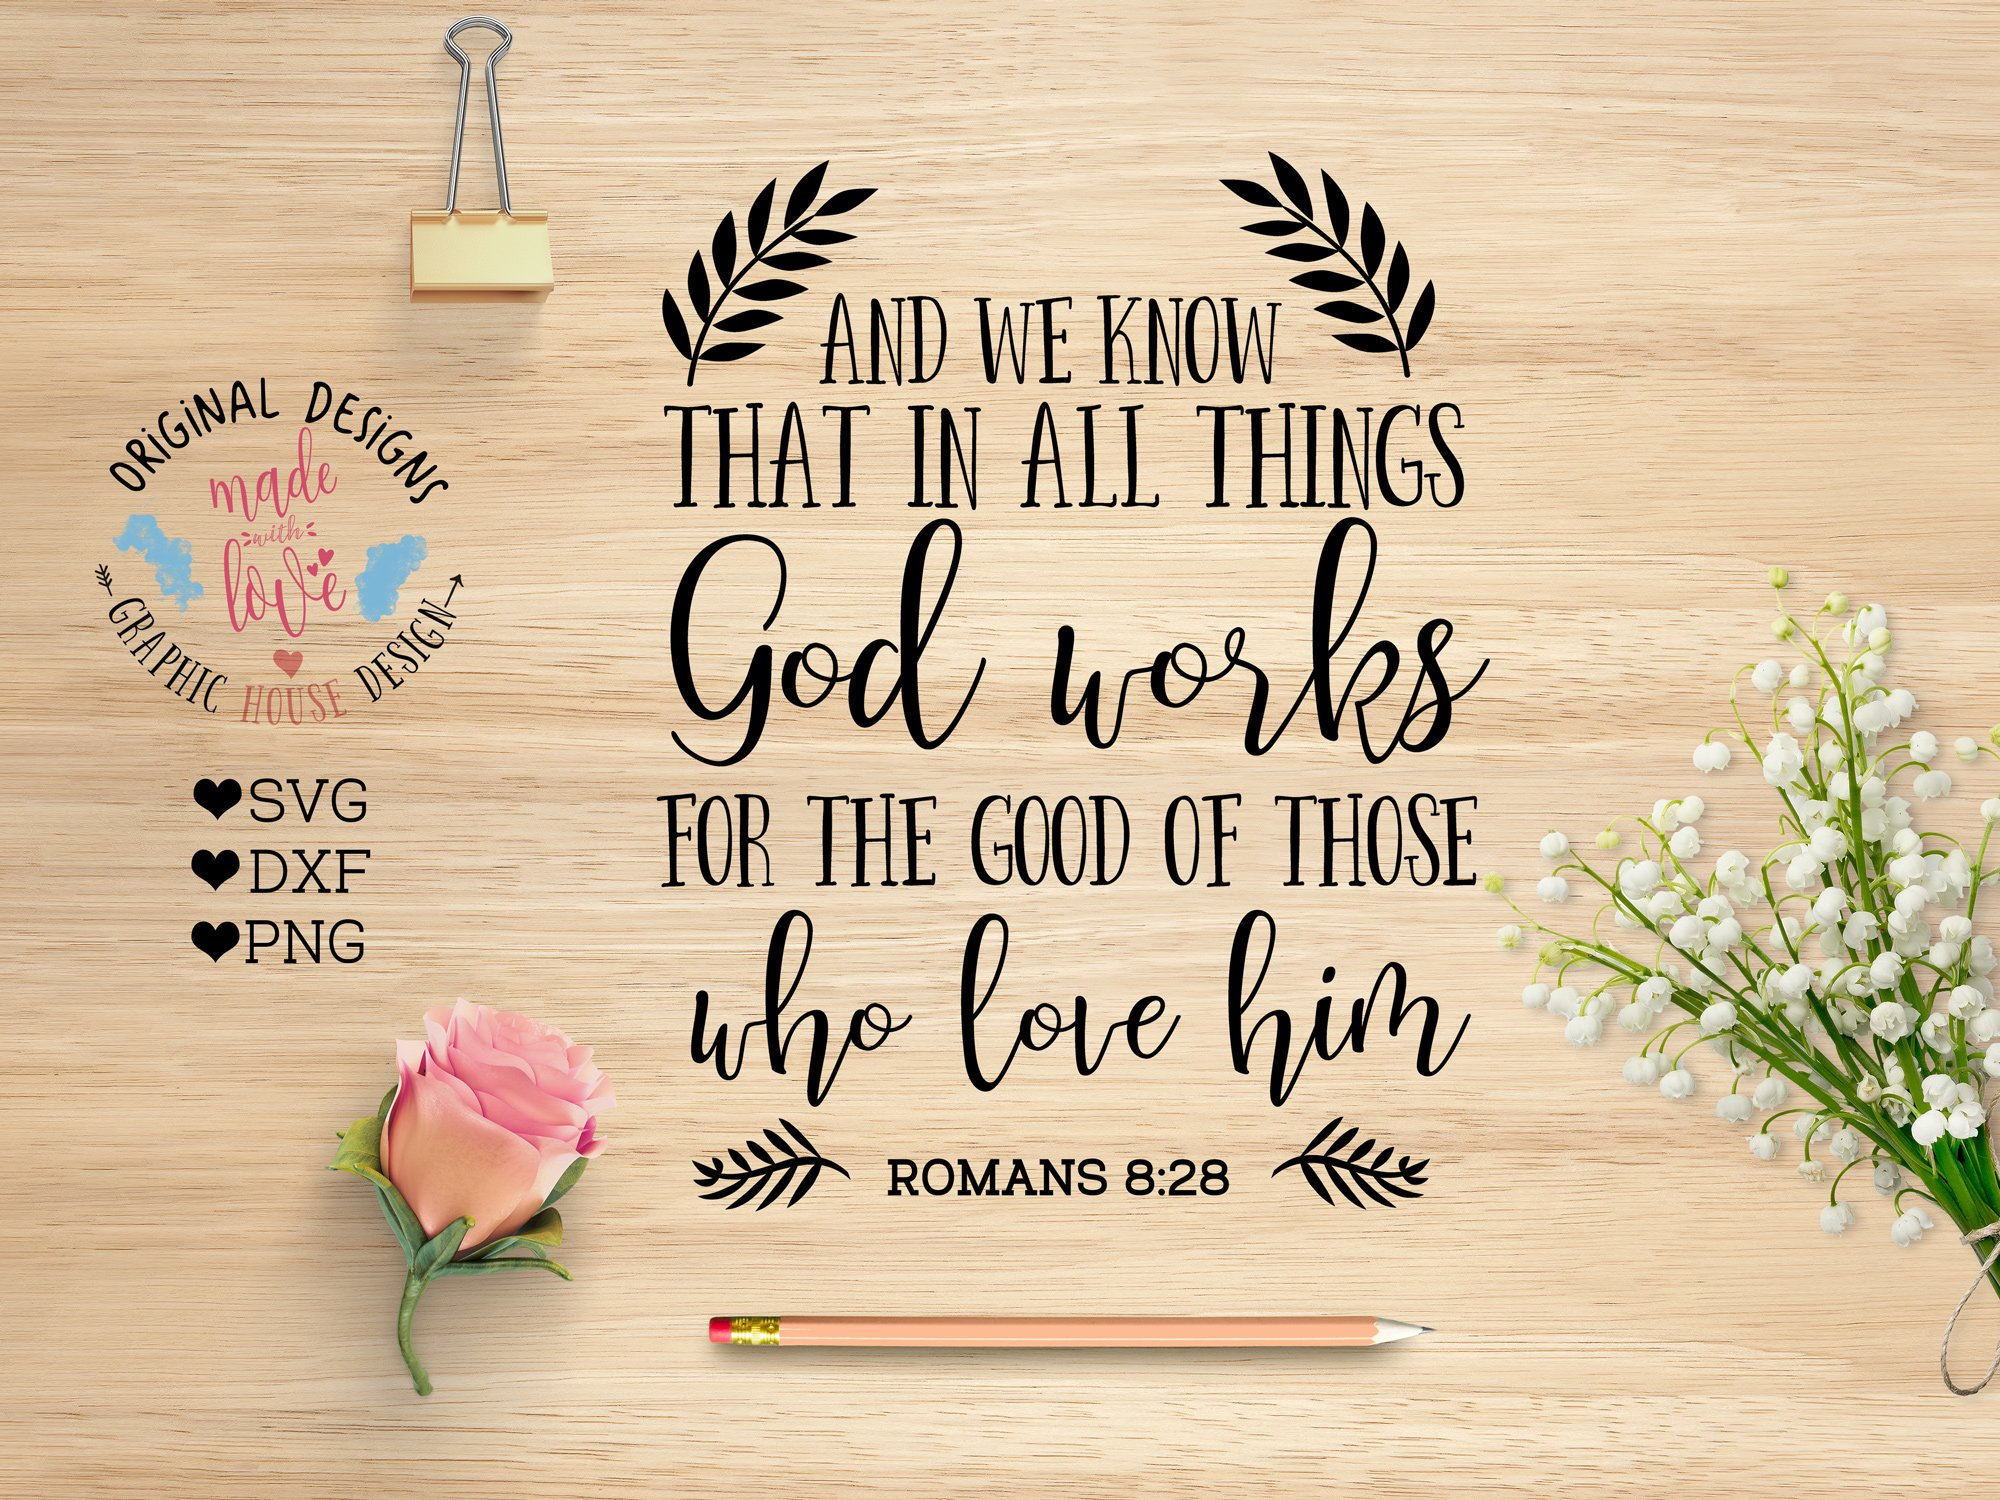 what god has in store for those who love him